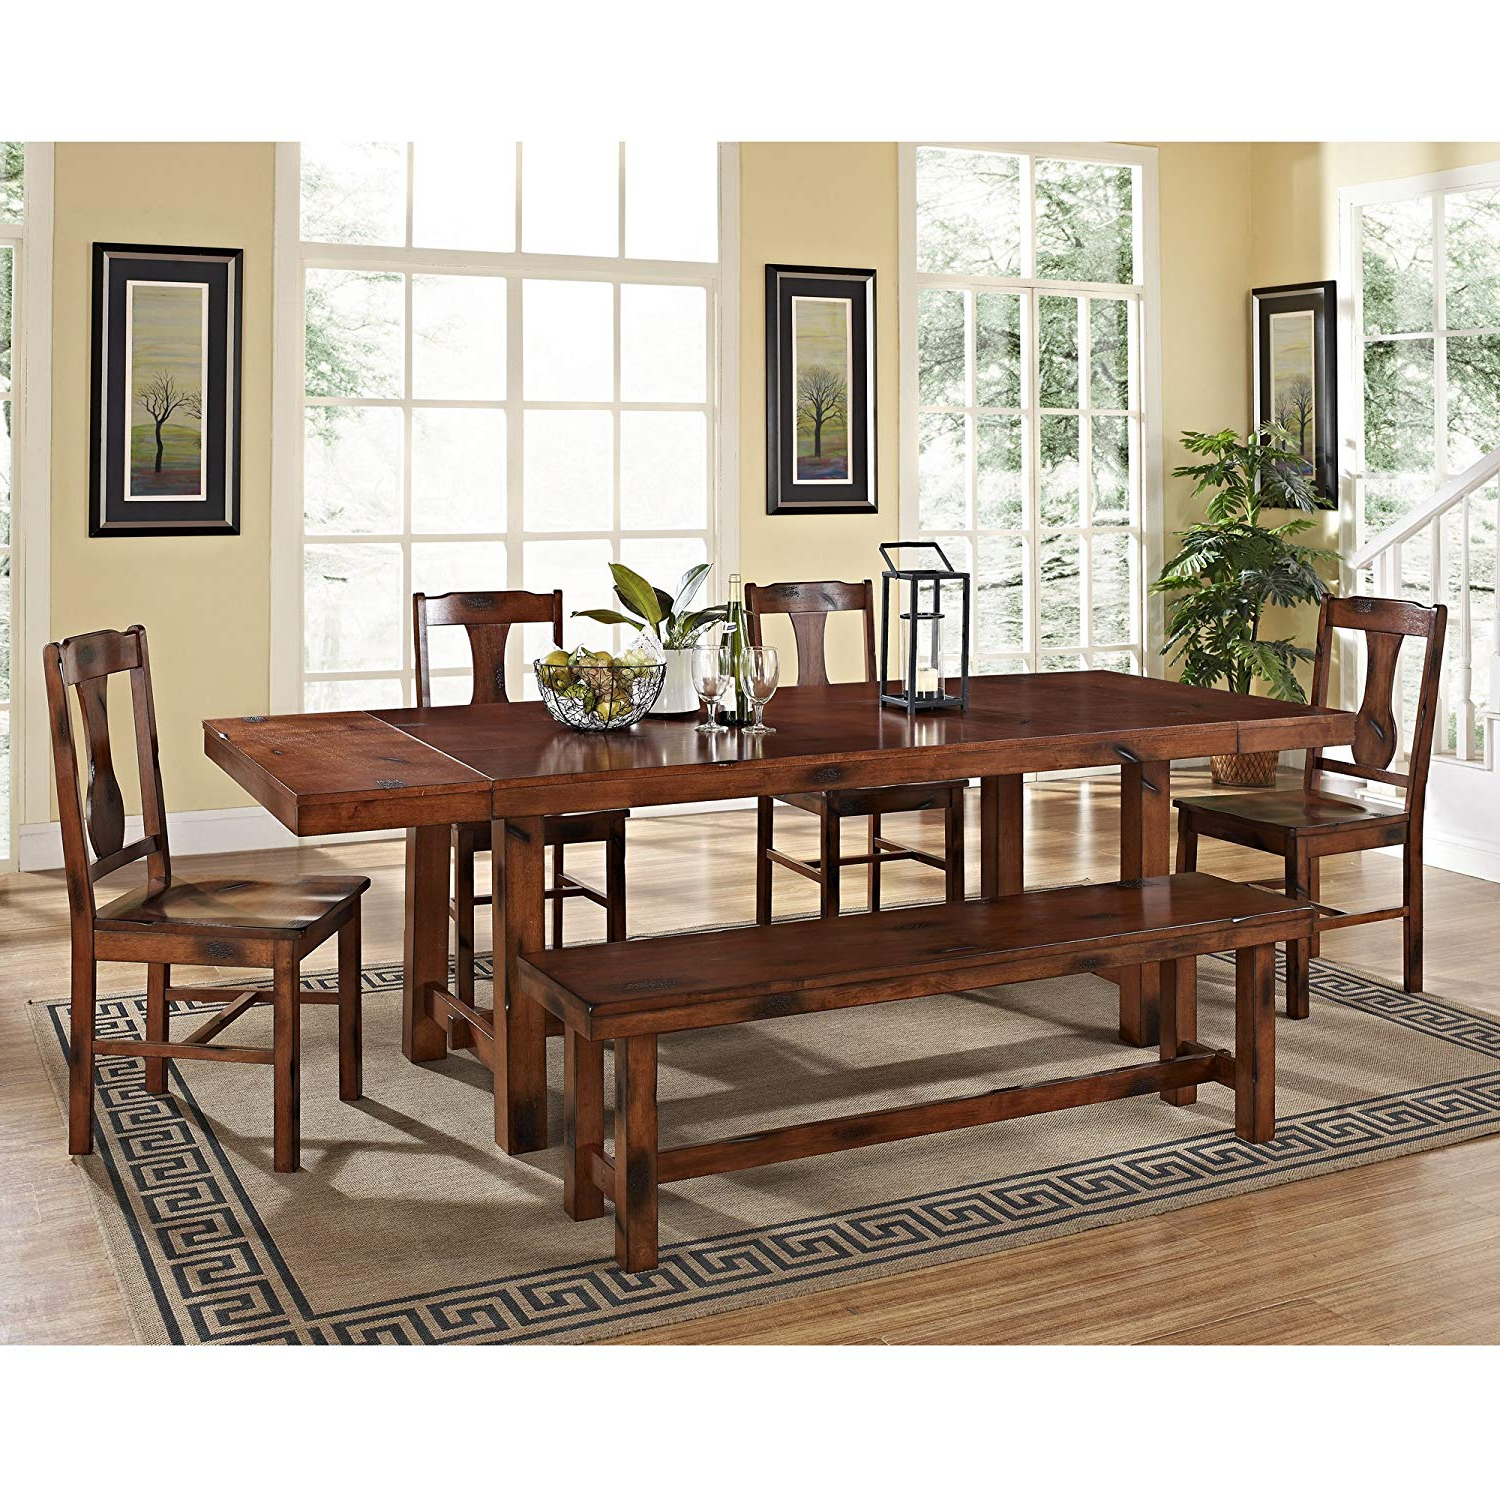 Well Known West Hill Family Table 3 Piece Dining Sets Within Amazon – 6 Piece Solid Wood Dining Set, Dark Oak – Table & Chair (View 16 of 25)